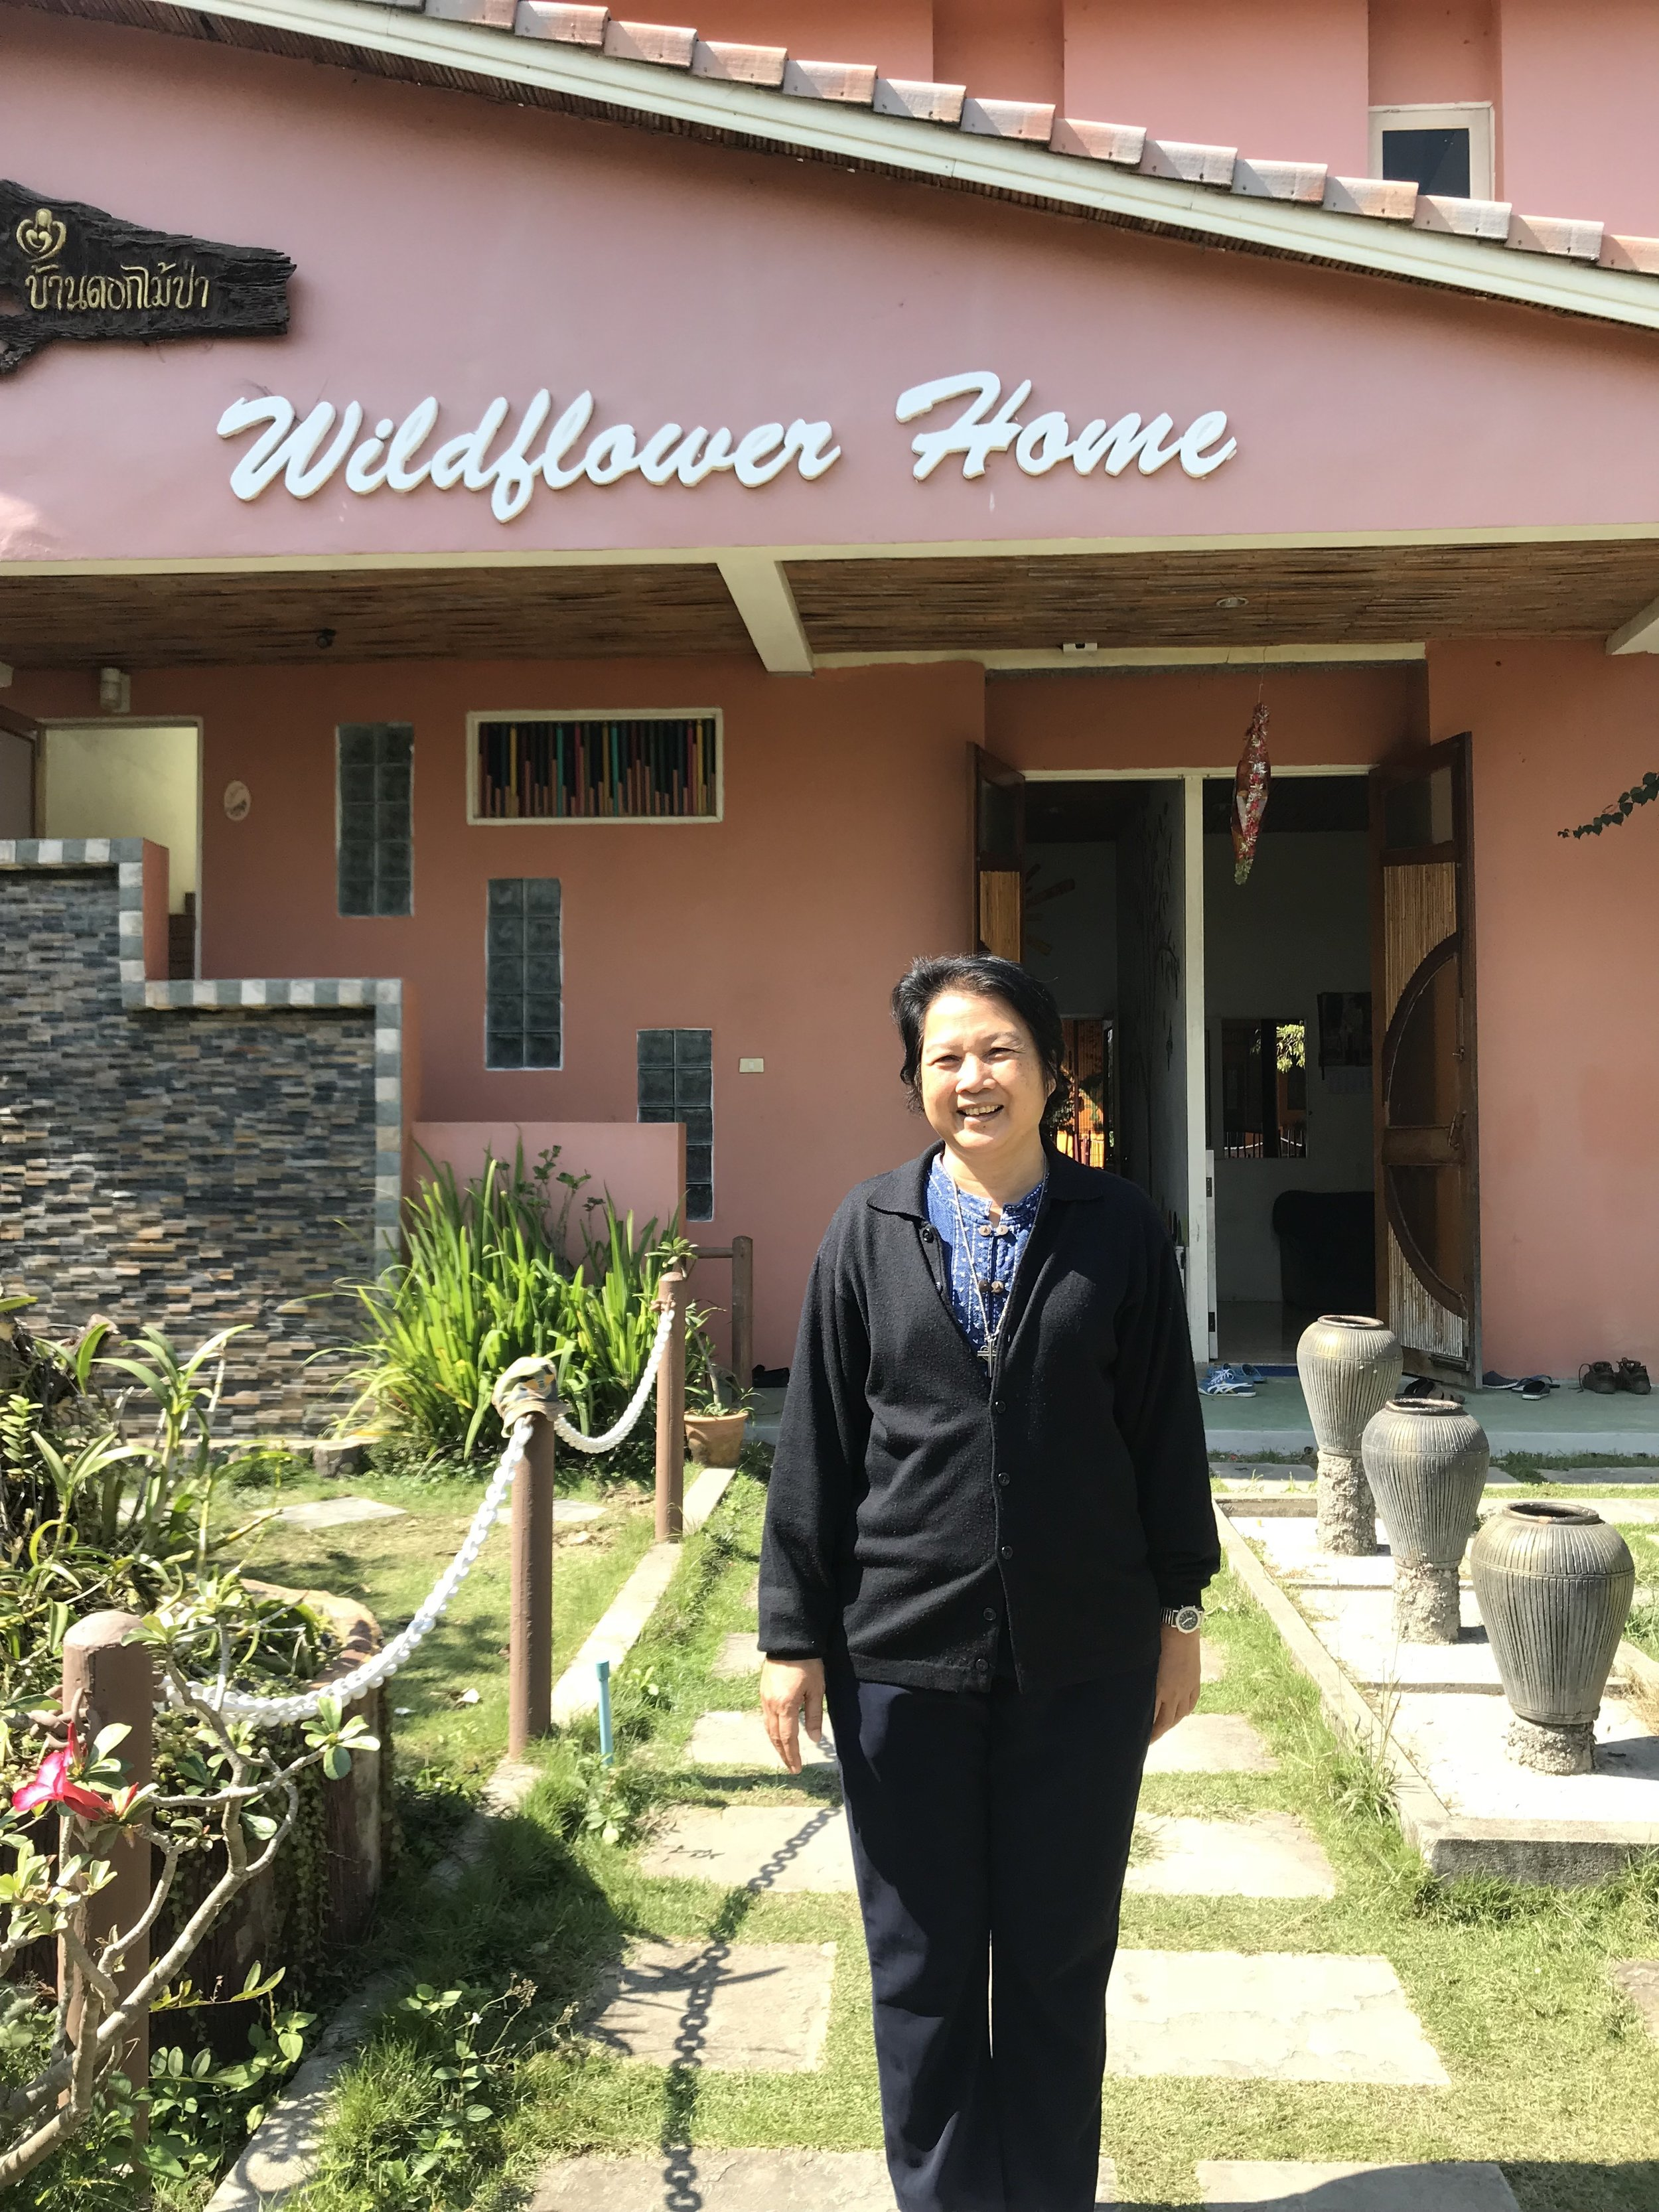 Sister Anurka in front of Wildflower Home.